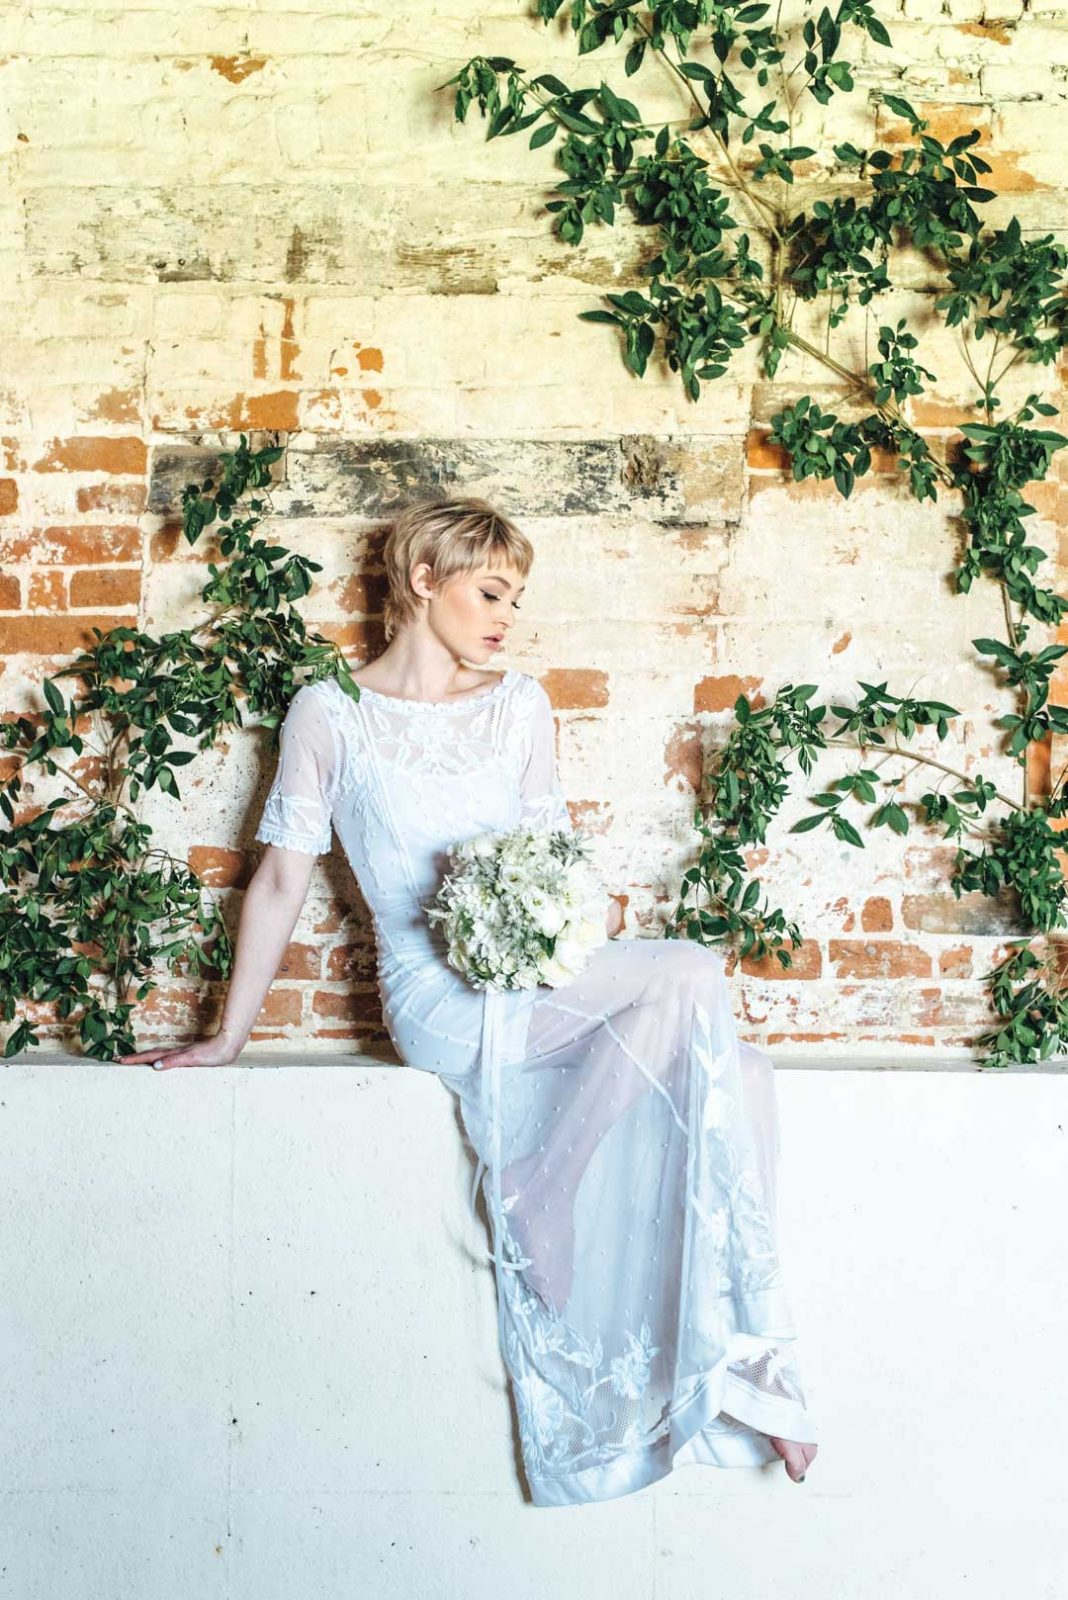 BethMoseleyPhotography_WhiteonWhite-72FINAL1080px wide-212